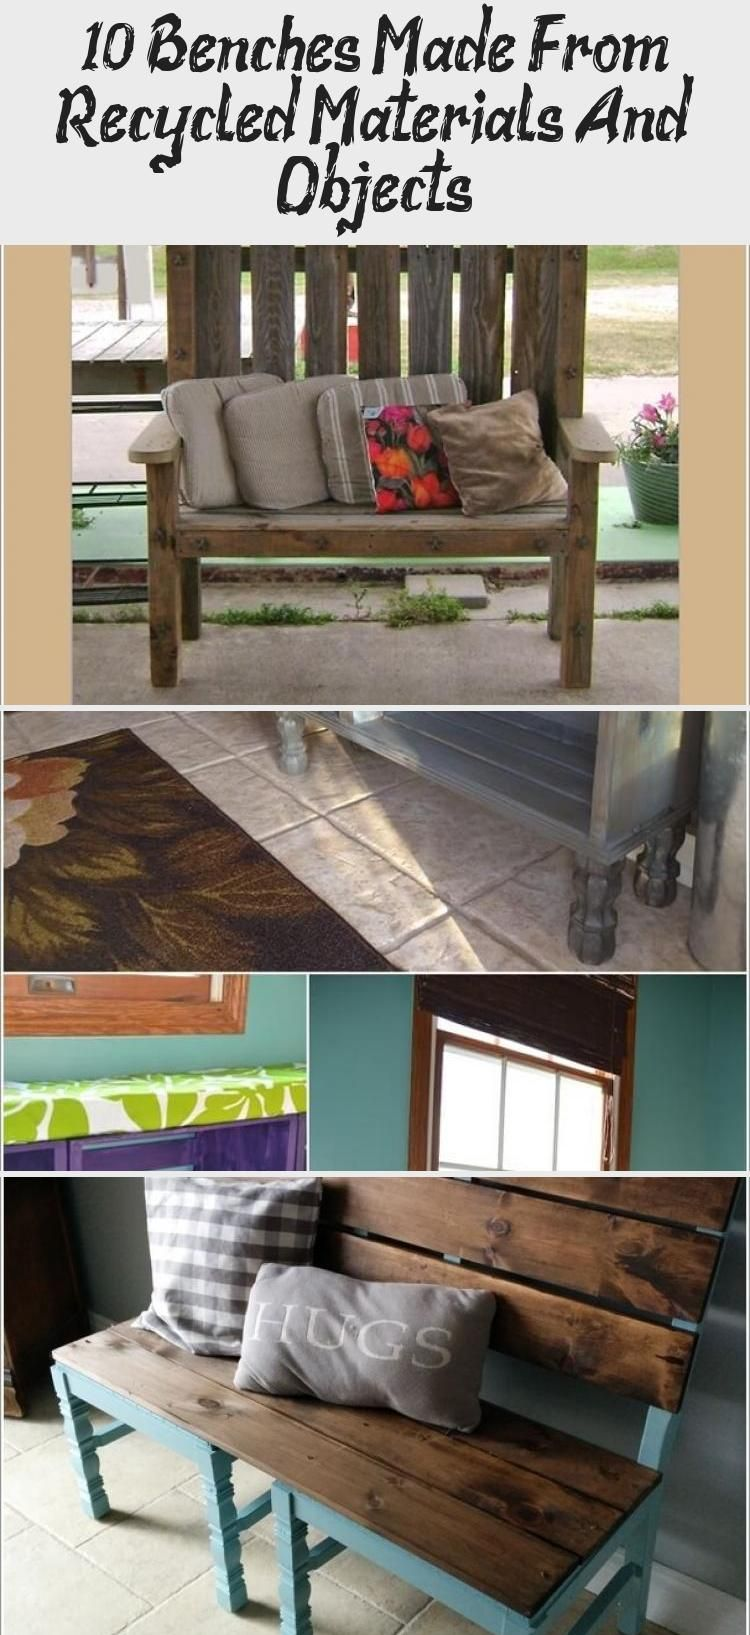 My Blog Storage Bench Designs Home Decor Decorating On A Budget